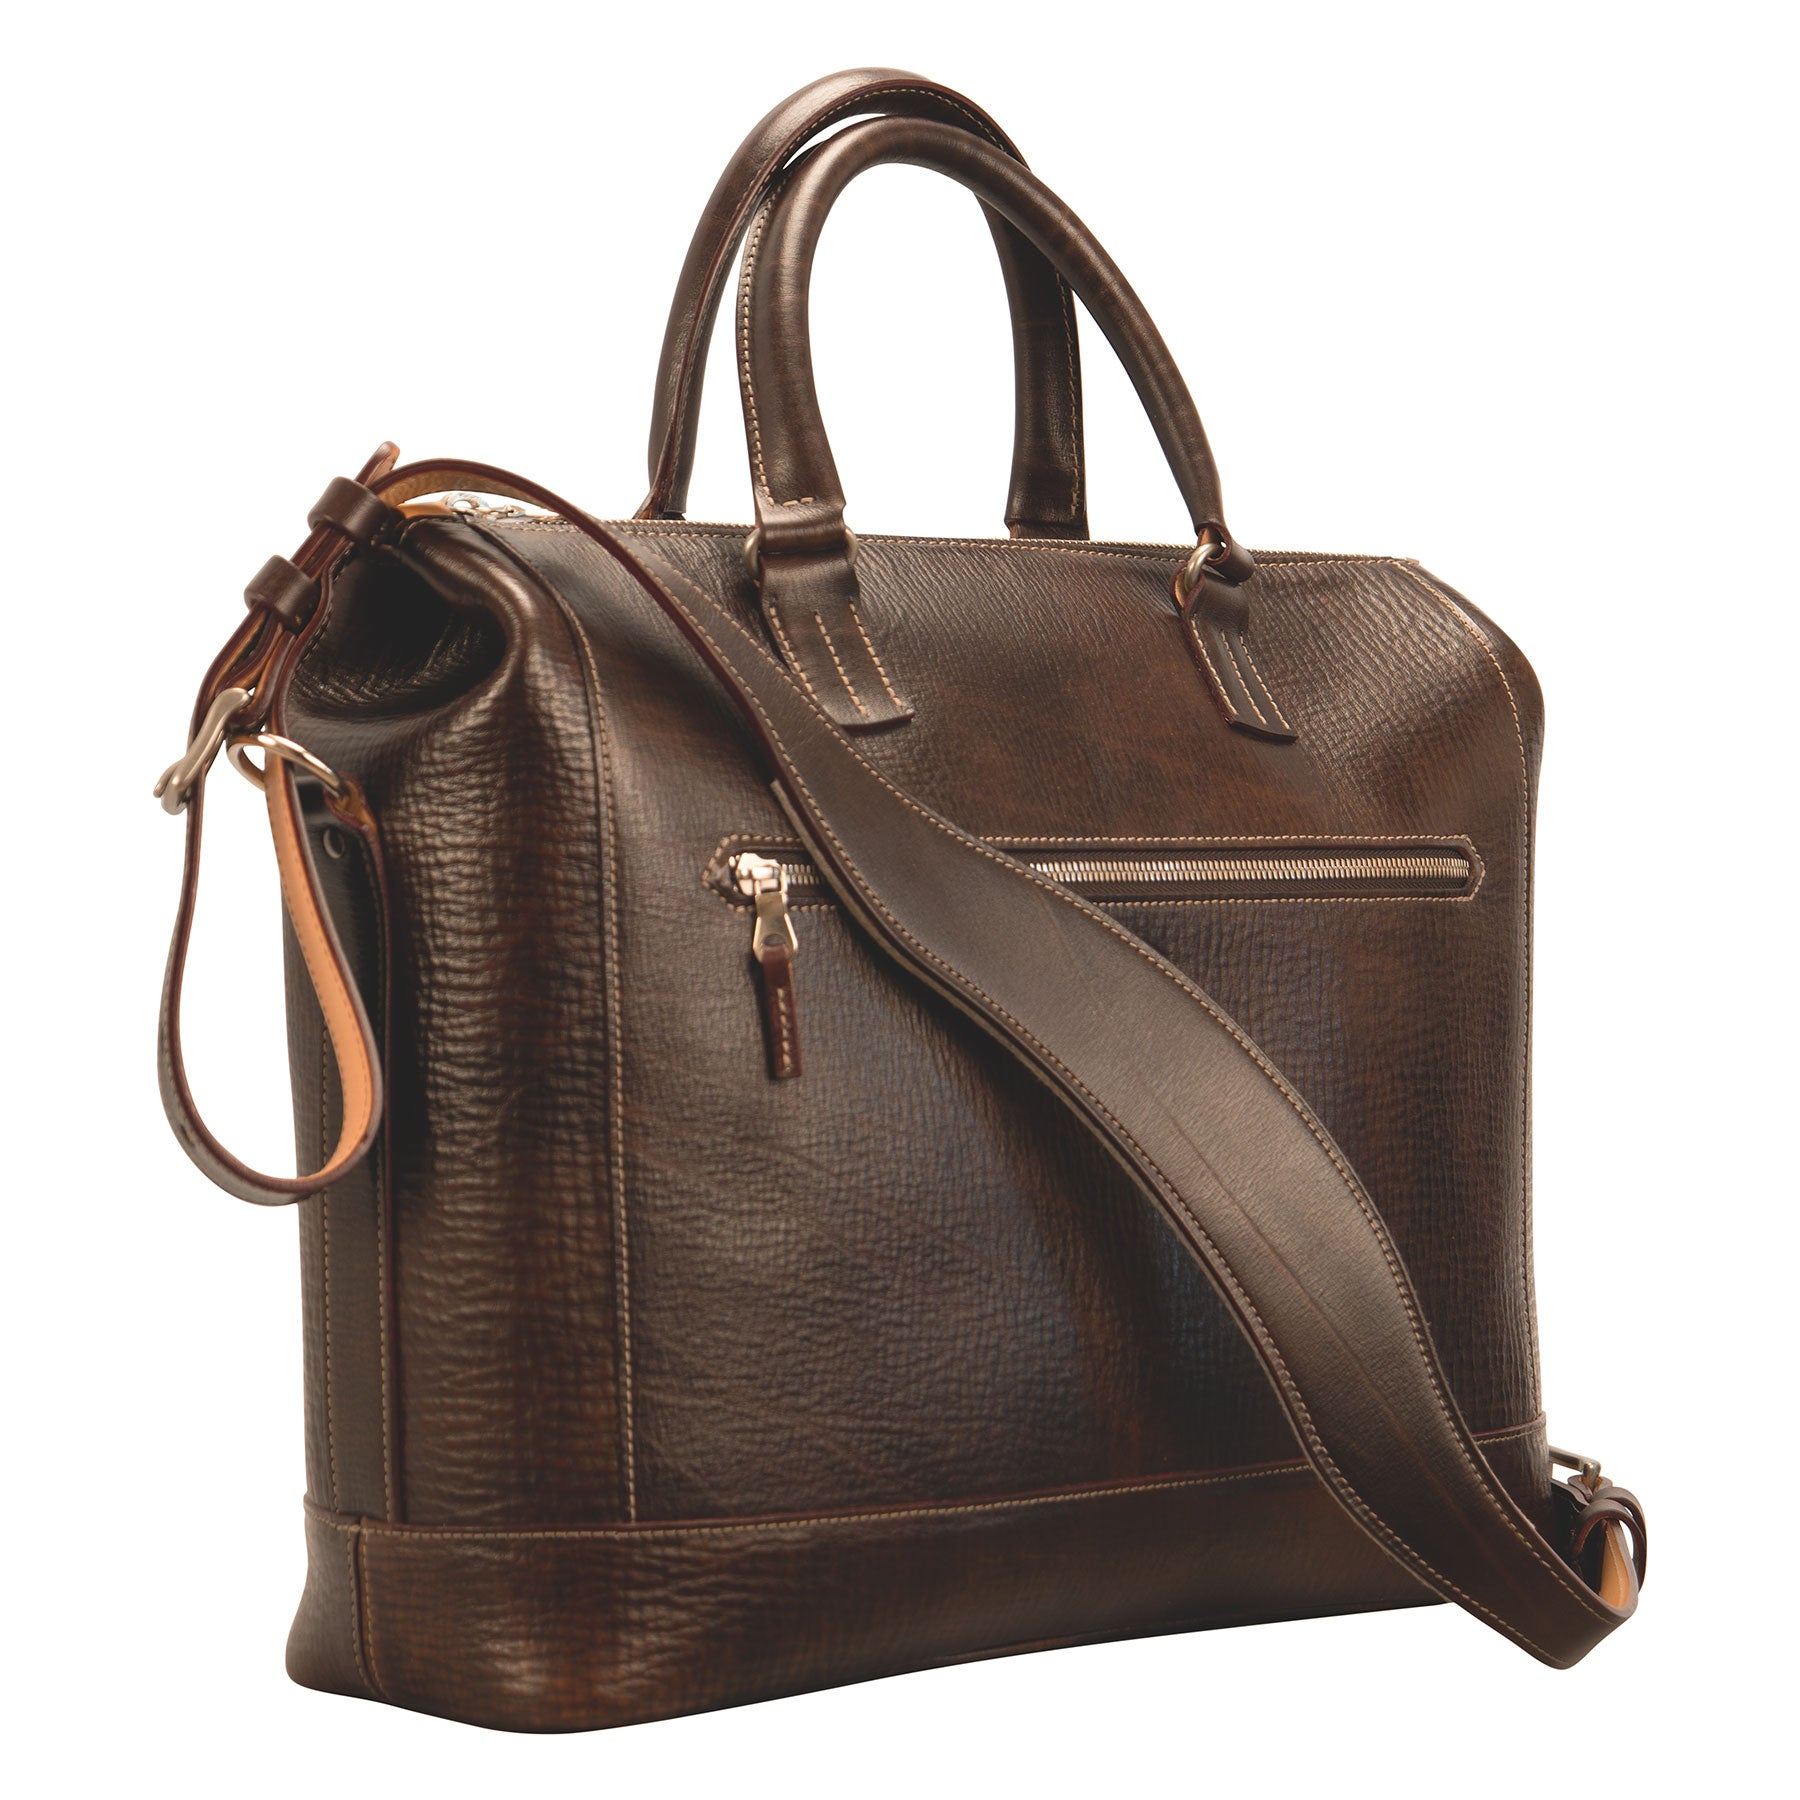 Glaser Designs Club Bag. Hand colored Espresso vegetable tanned leather. Solid brass hardware. Made to-measure, custom sizes.